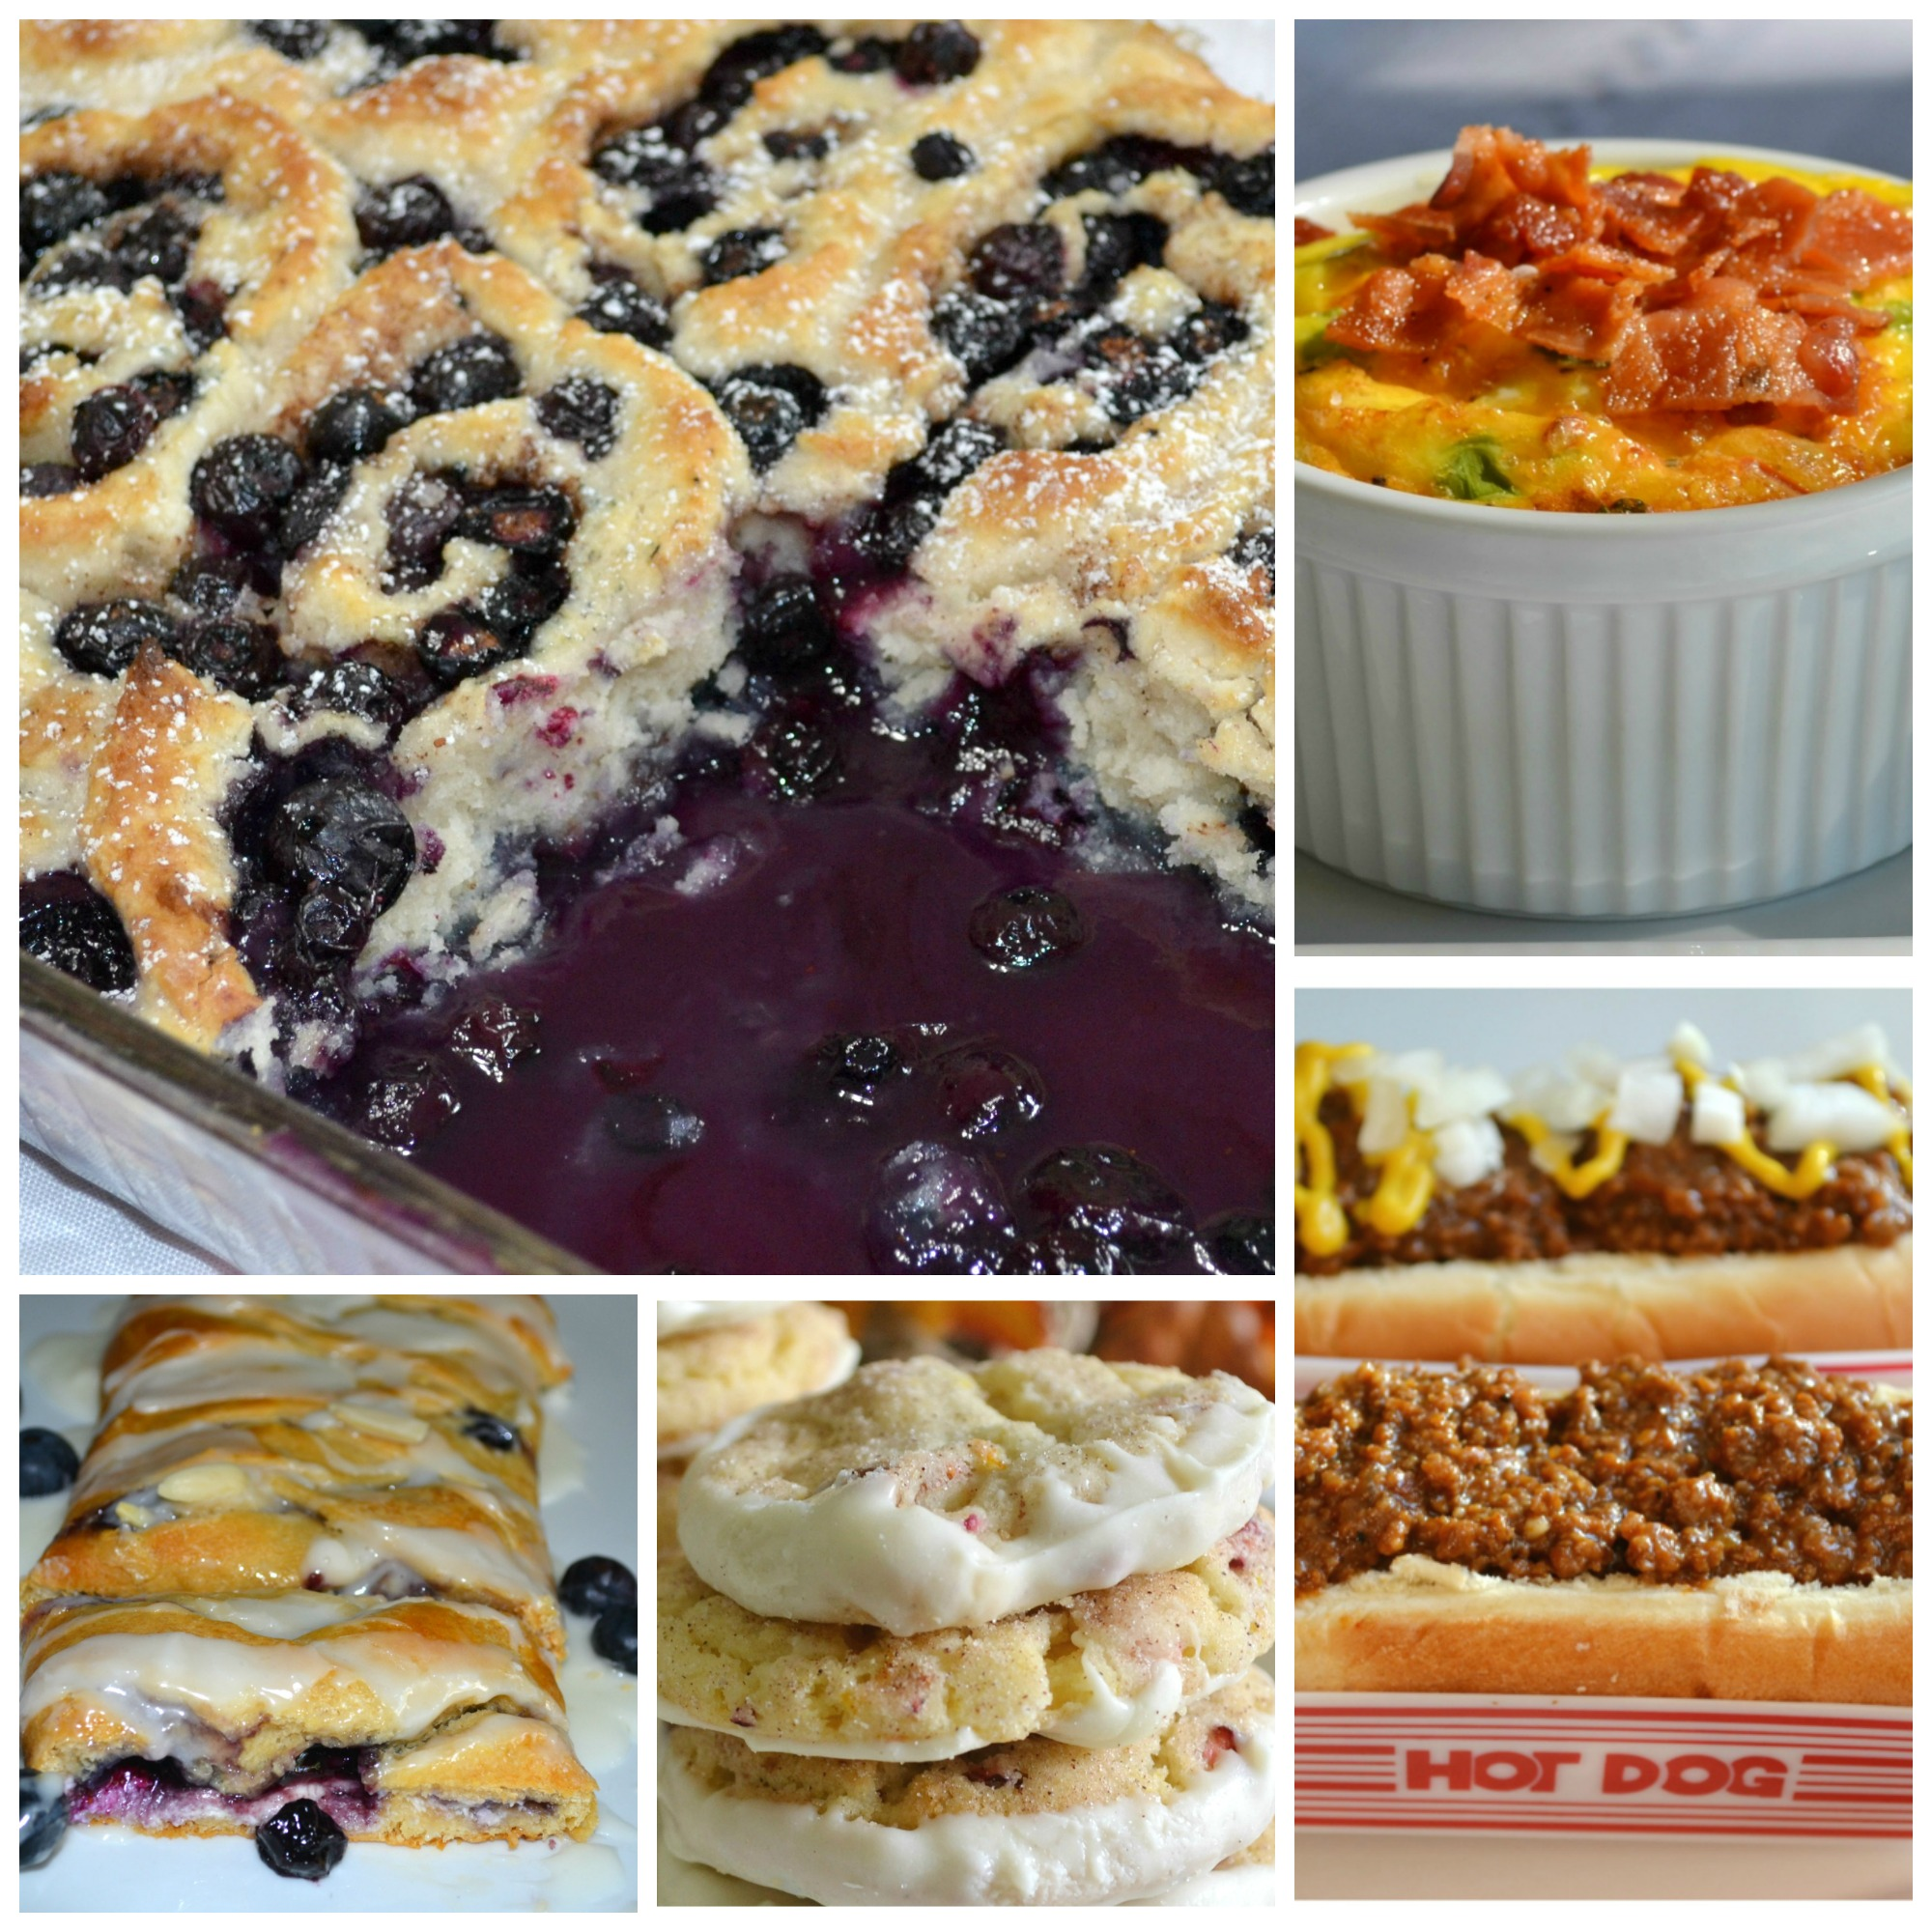 Sharing the top 5 recipe posts from 2016.